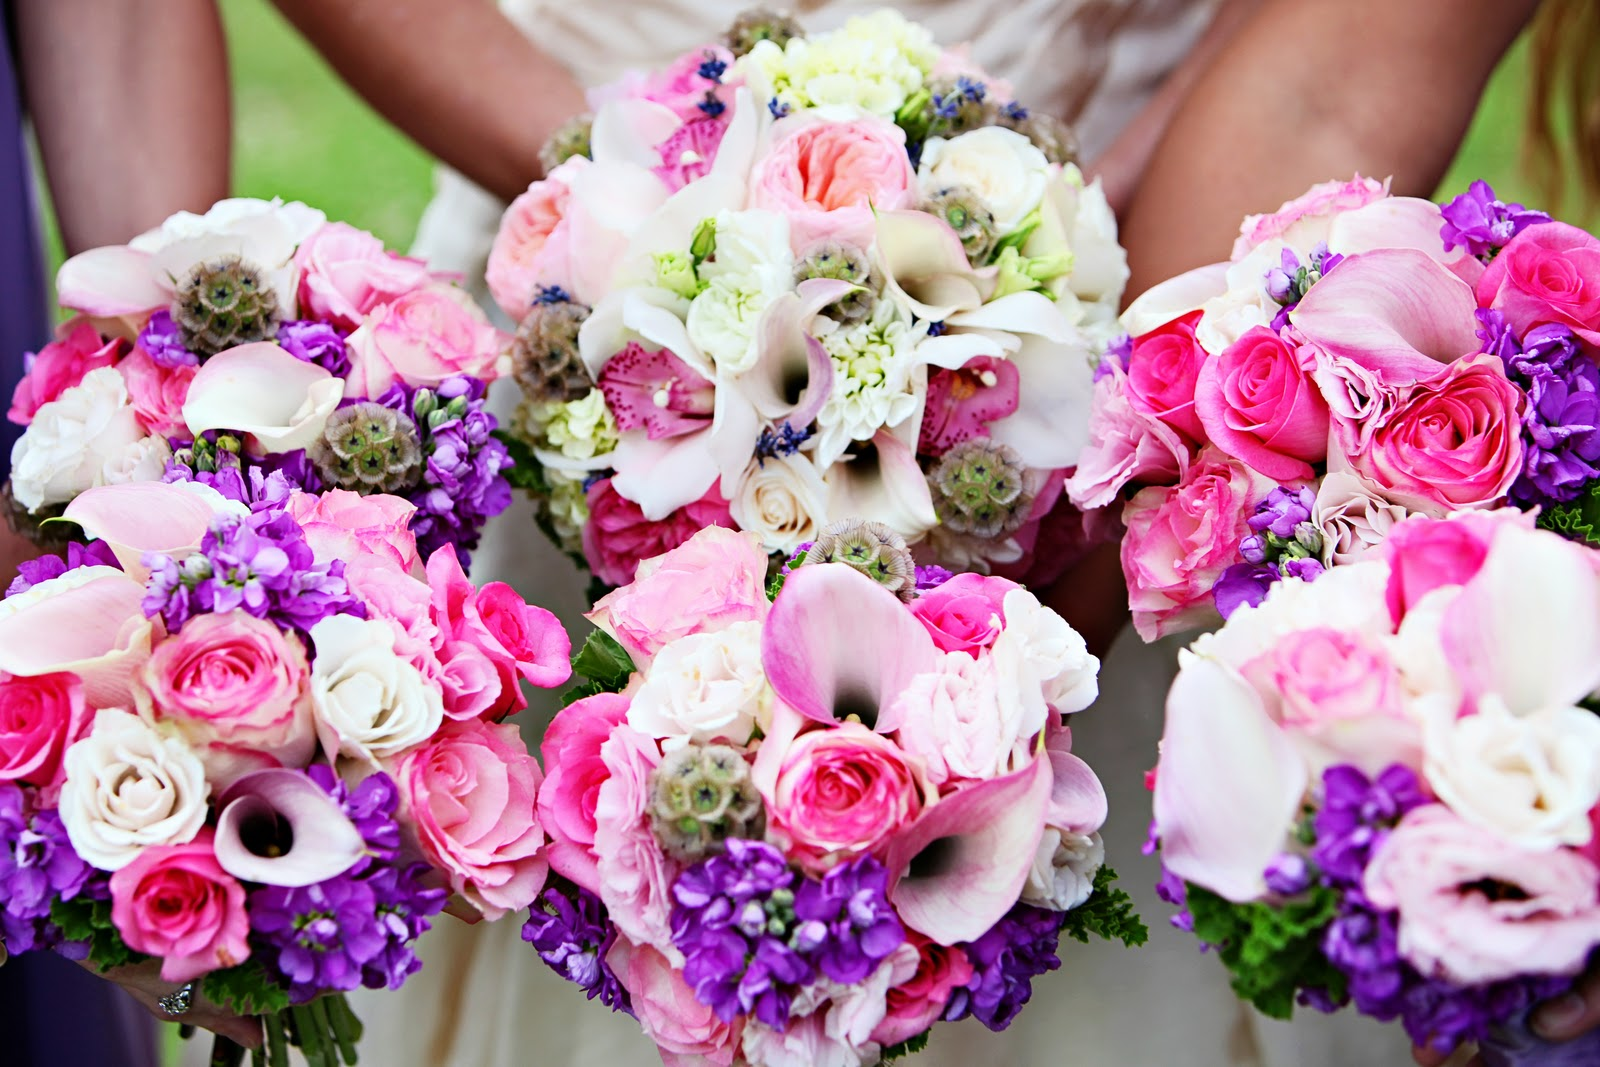 Wedding Bouquets In April : April flowers monday cutie sun valley idaho a custom wedding dress and dear friends